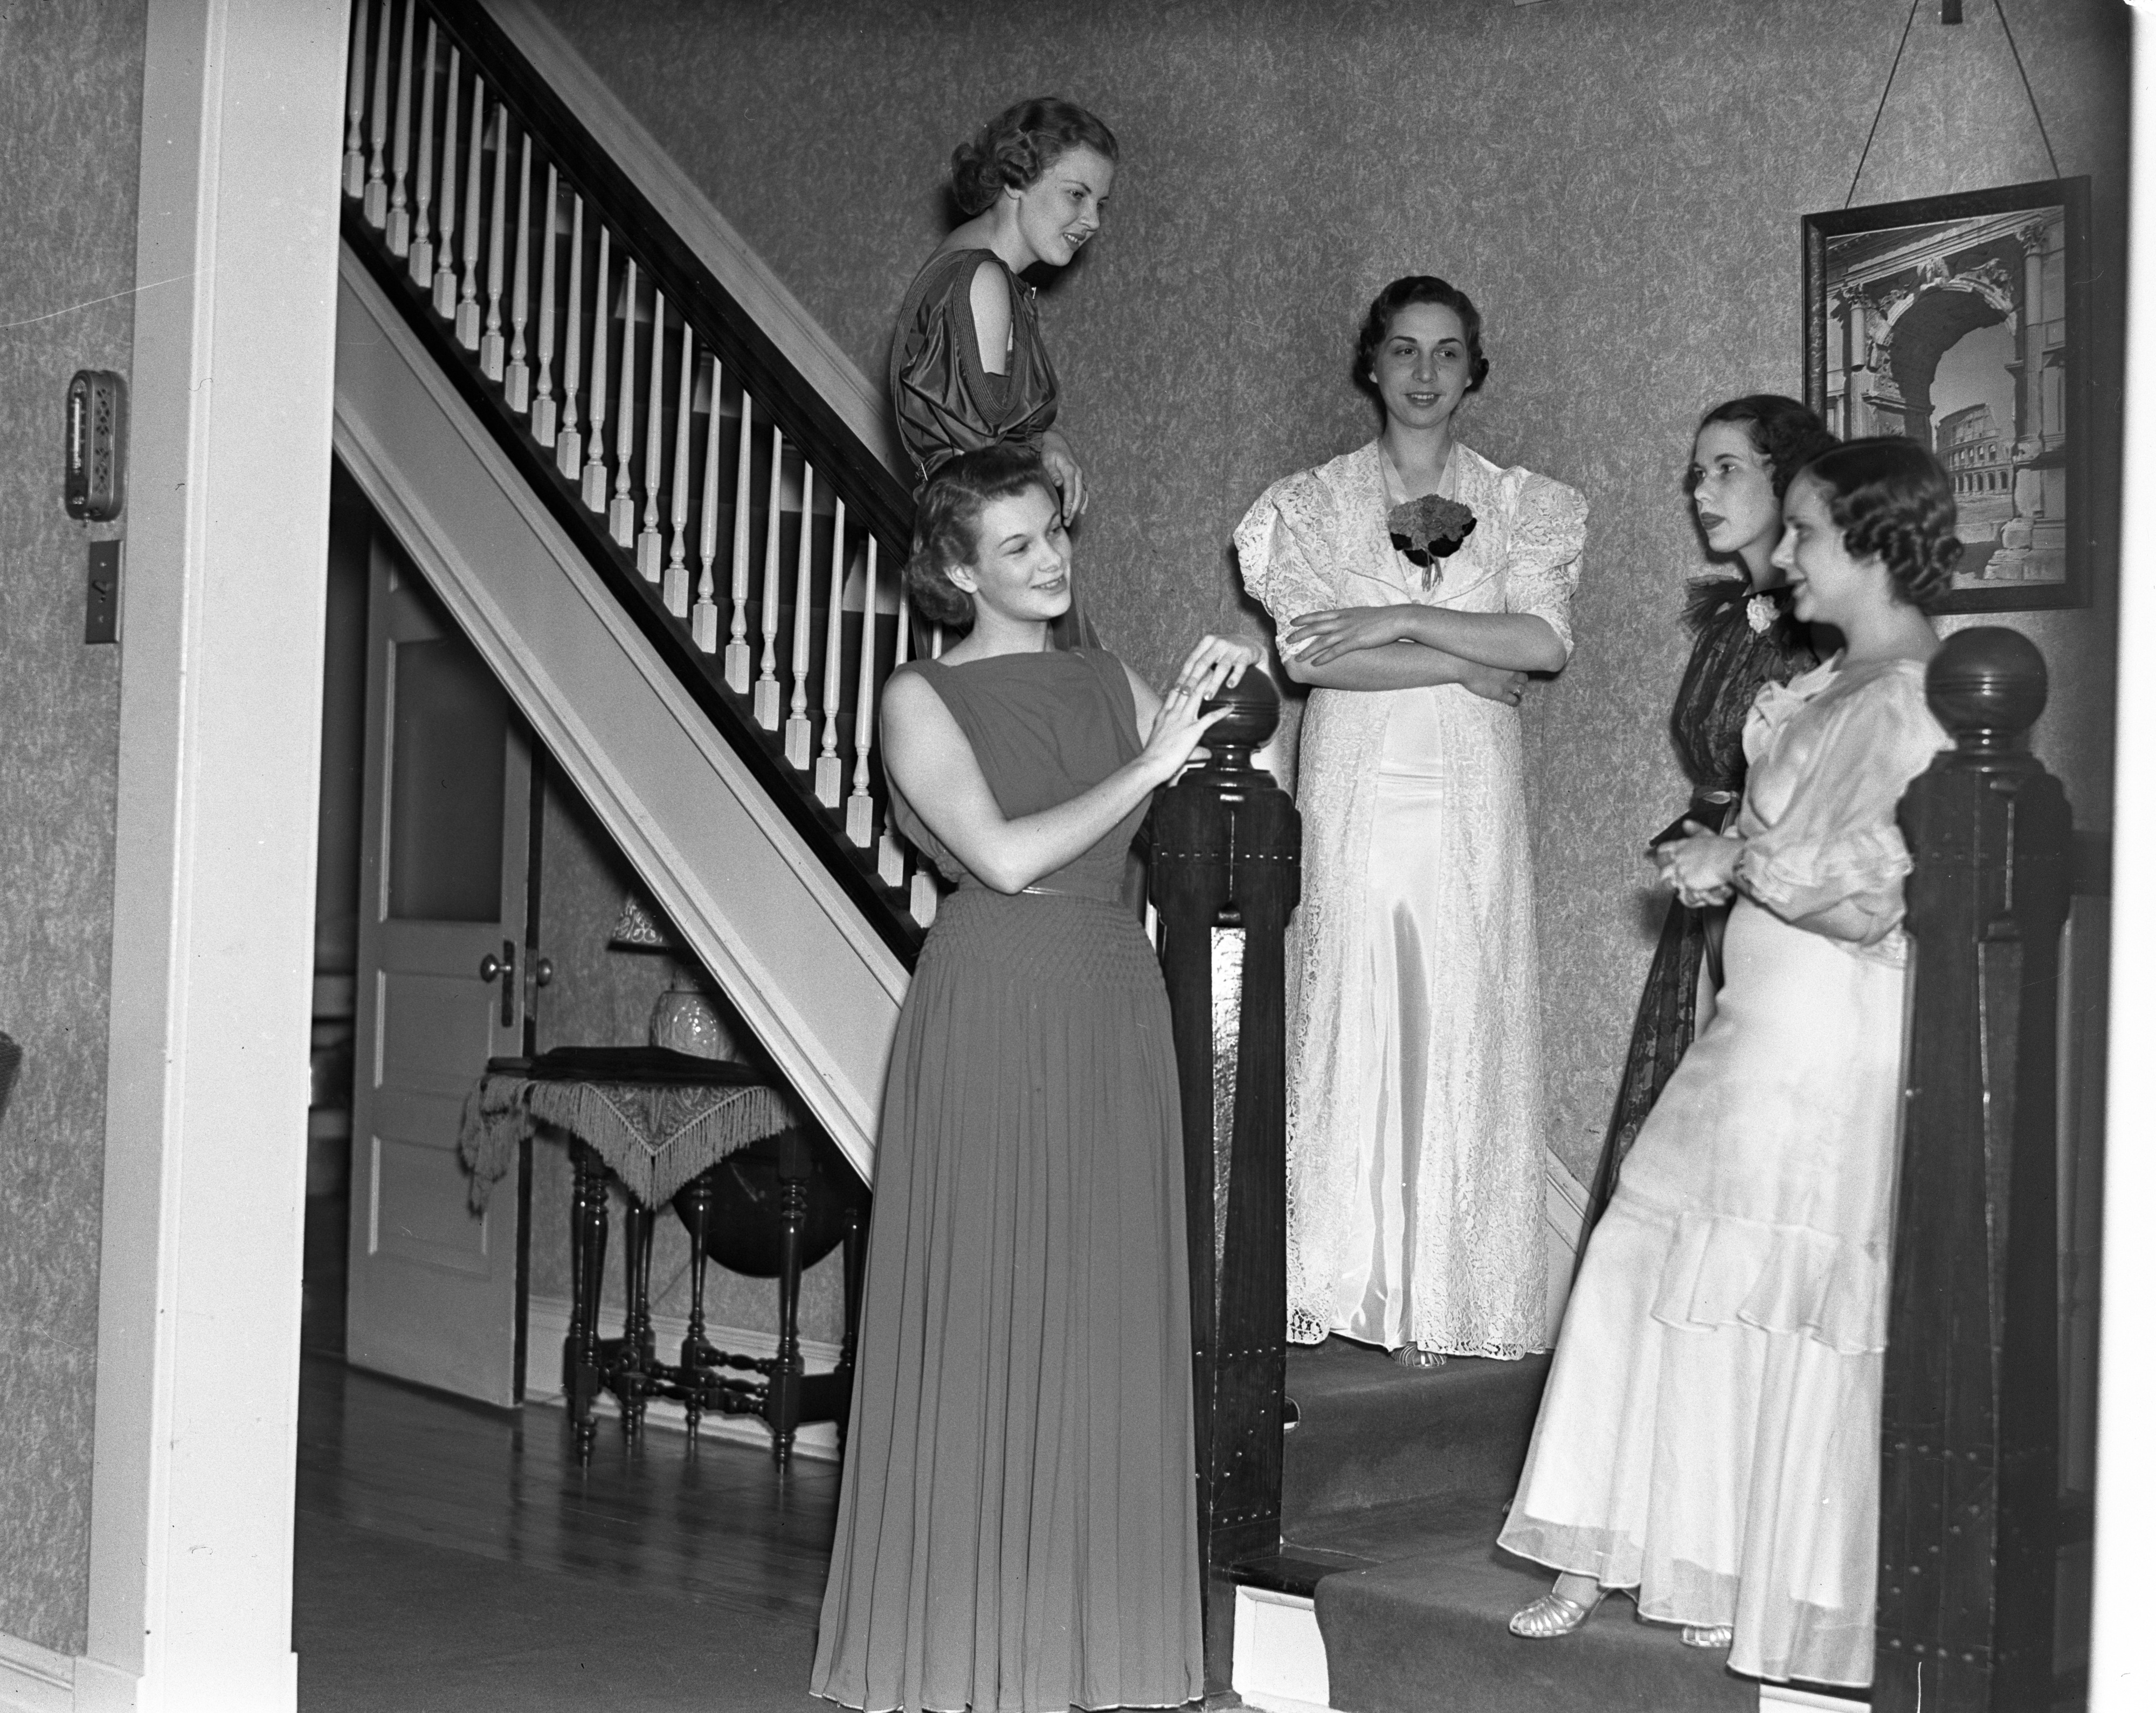 At Zeta Tau Alpha, April 24, 1937 image